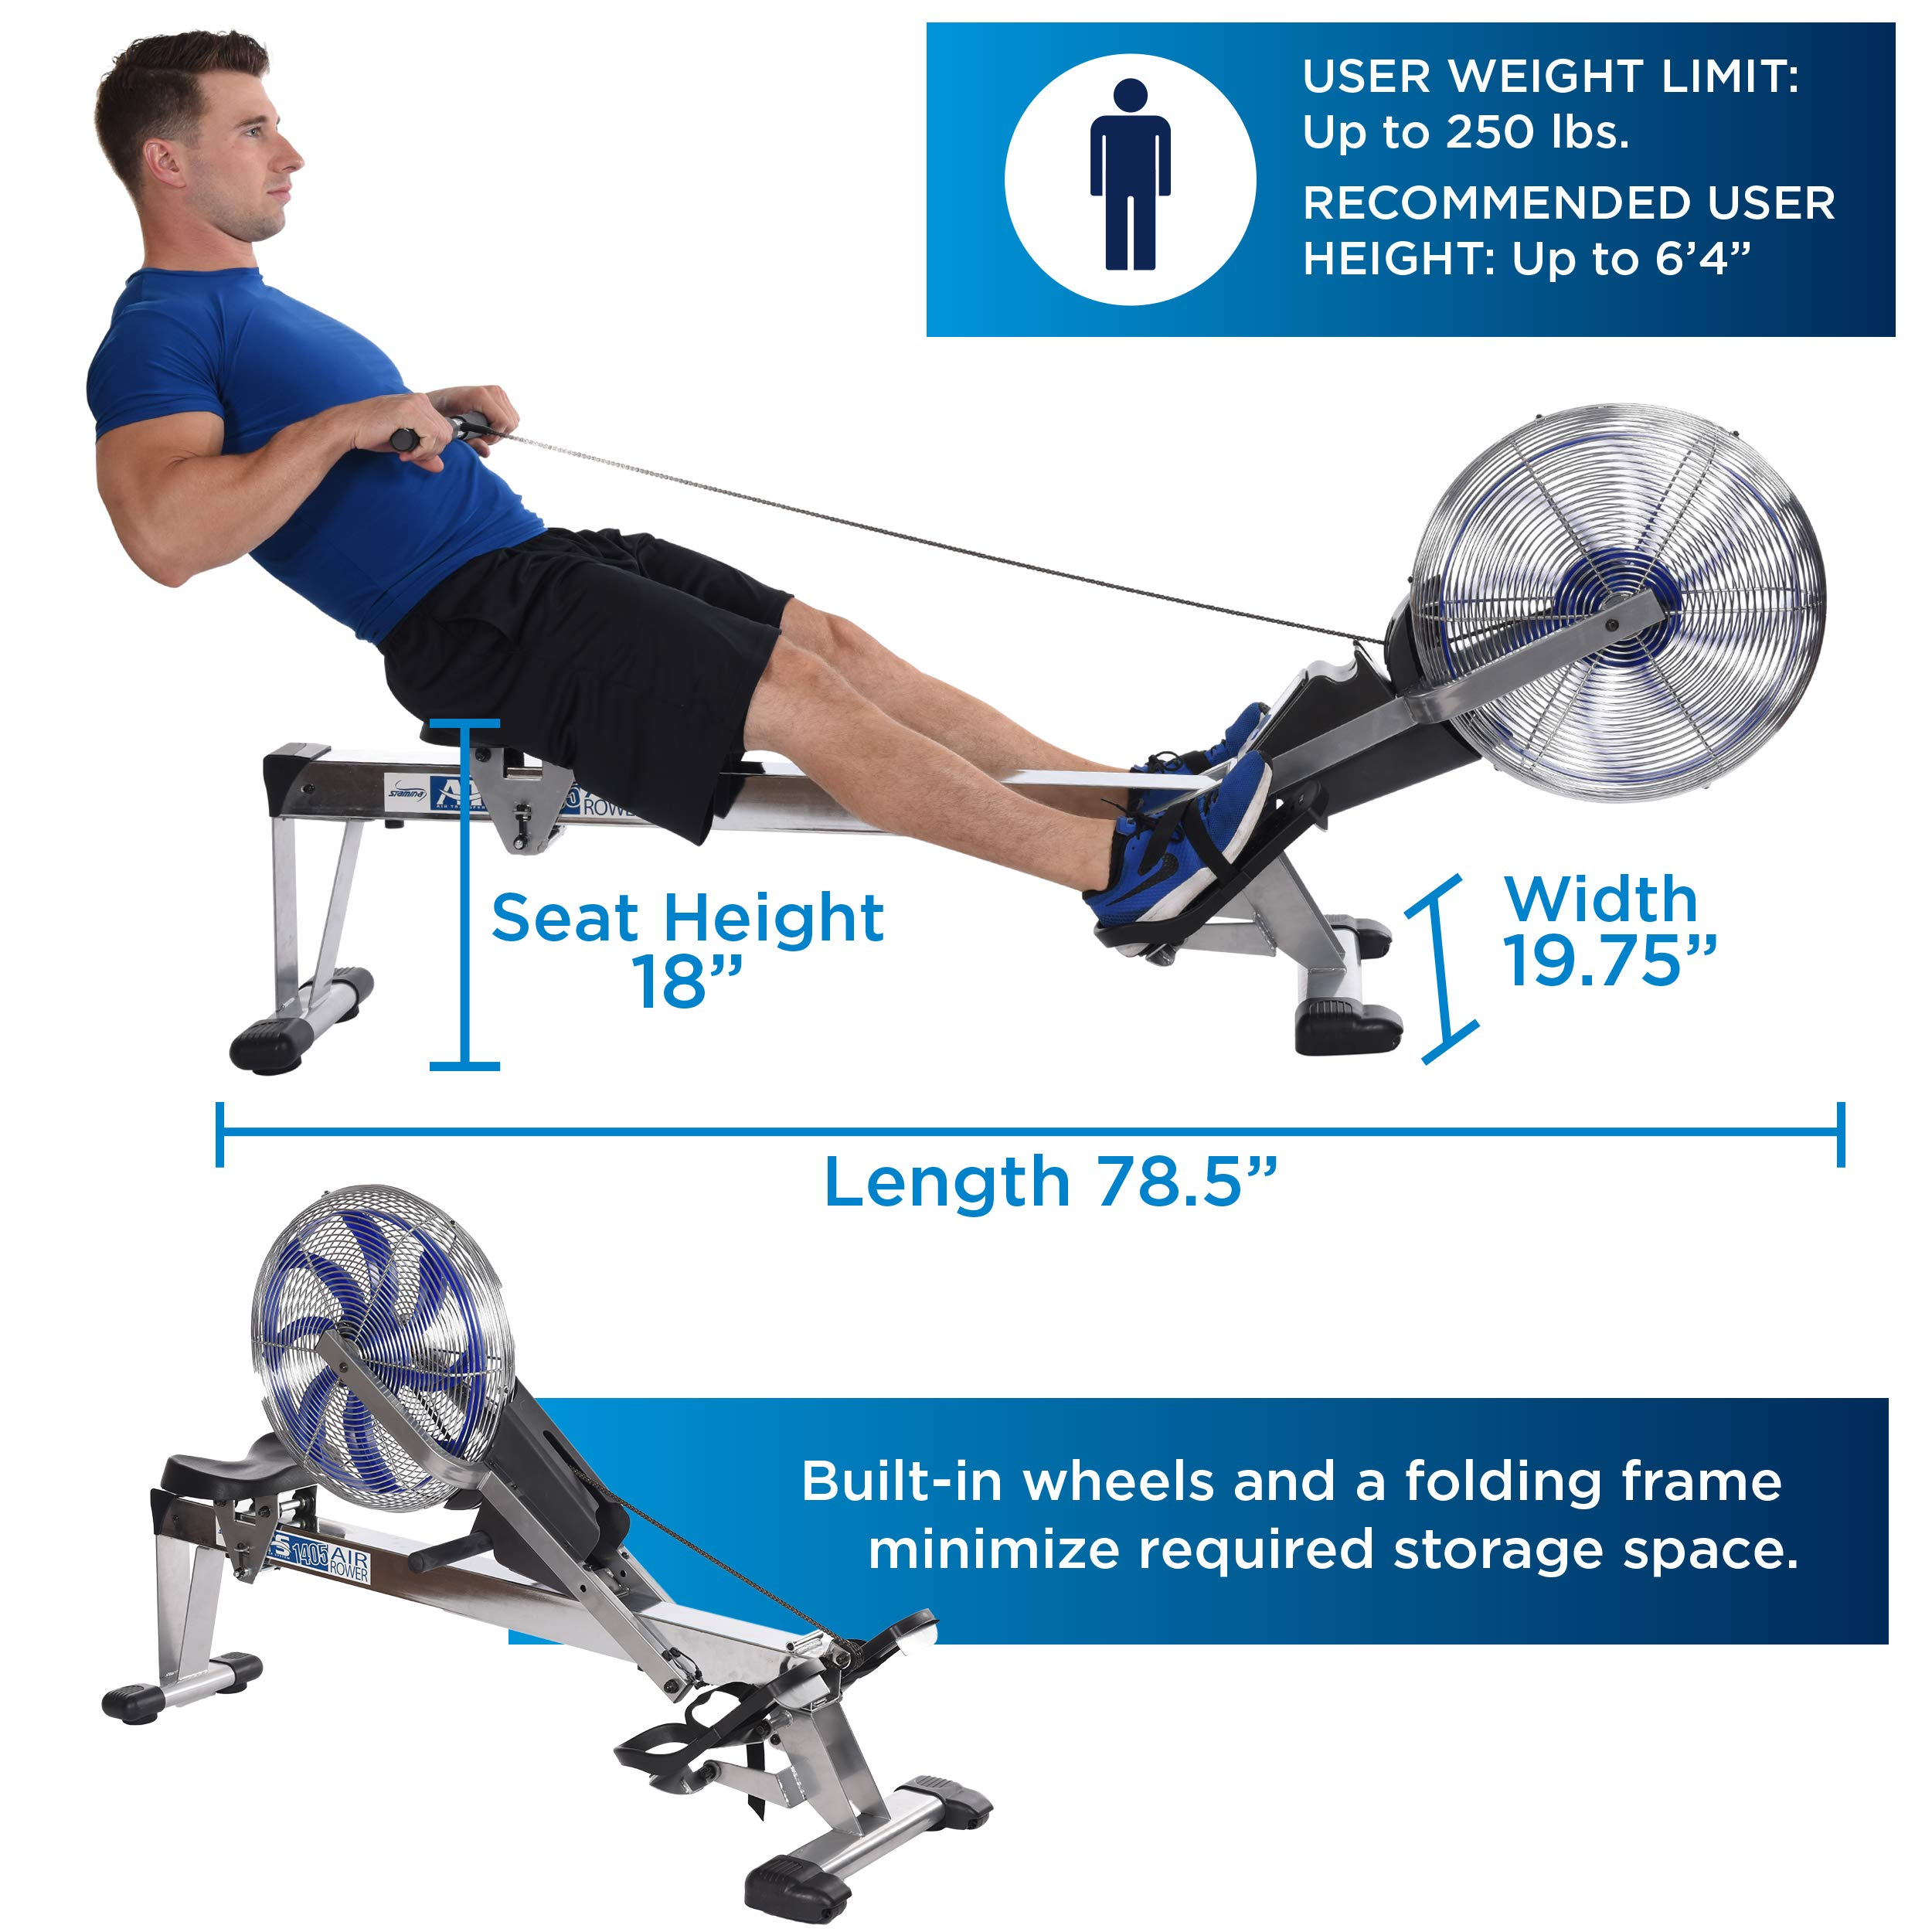 Stamina 35-1405 ATS Air Rower 1405 Rowing Machine, Air Resistance, LCD Fitness Monitor, Folding and Built-in Wheels, Chrome/Blue/Black by Stamina (Image #7)